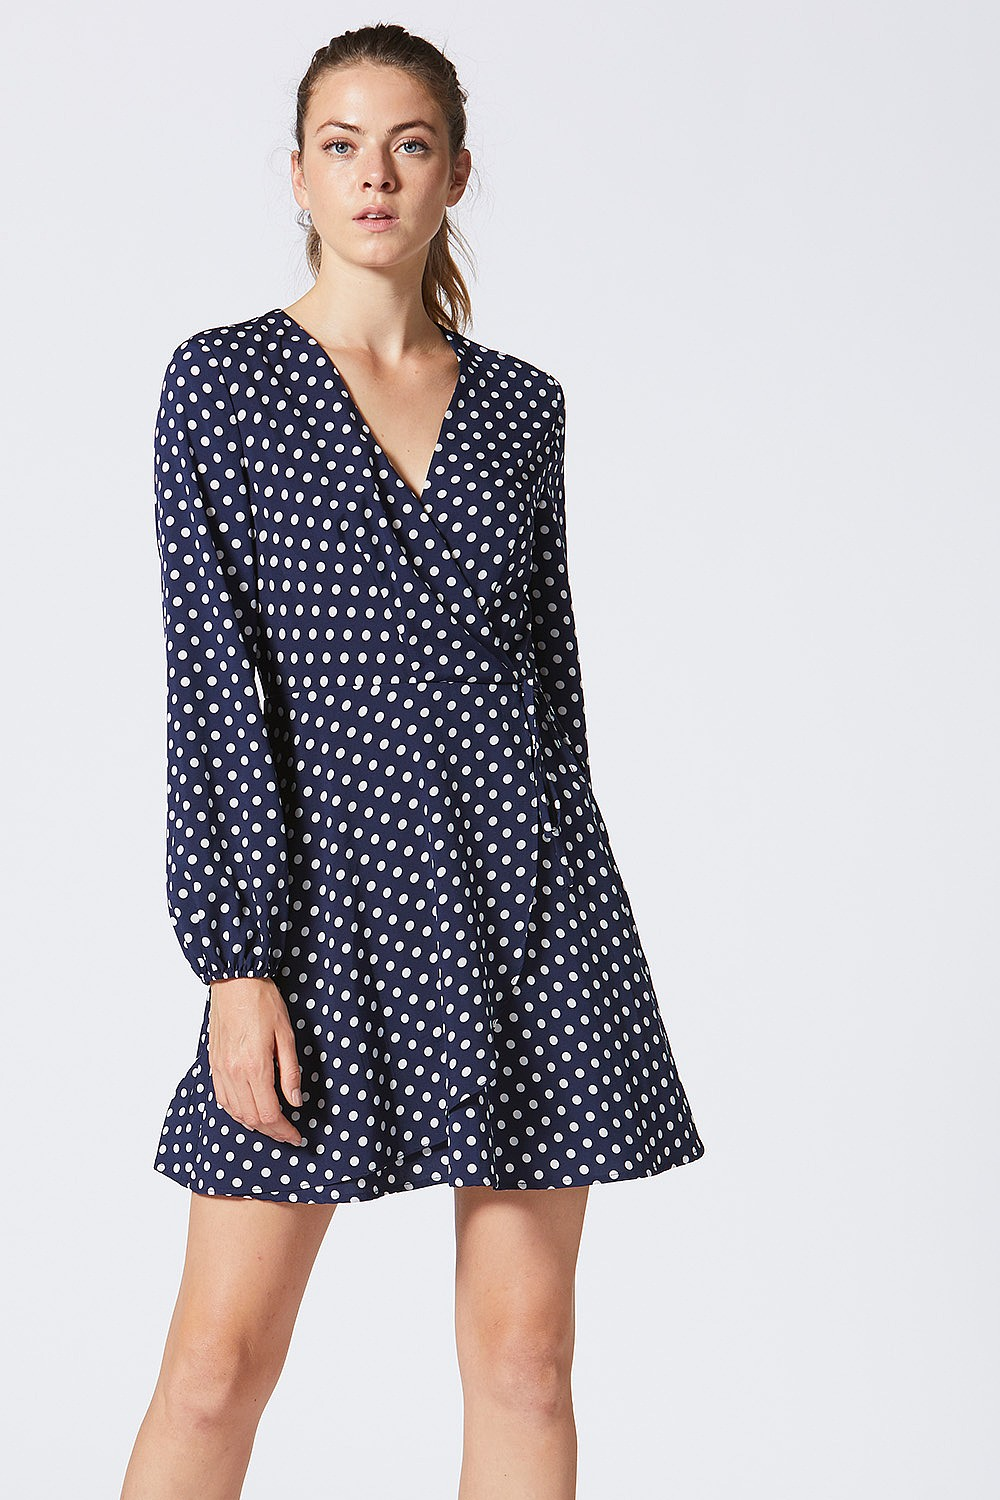 Angeleye Polka Dot Dress